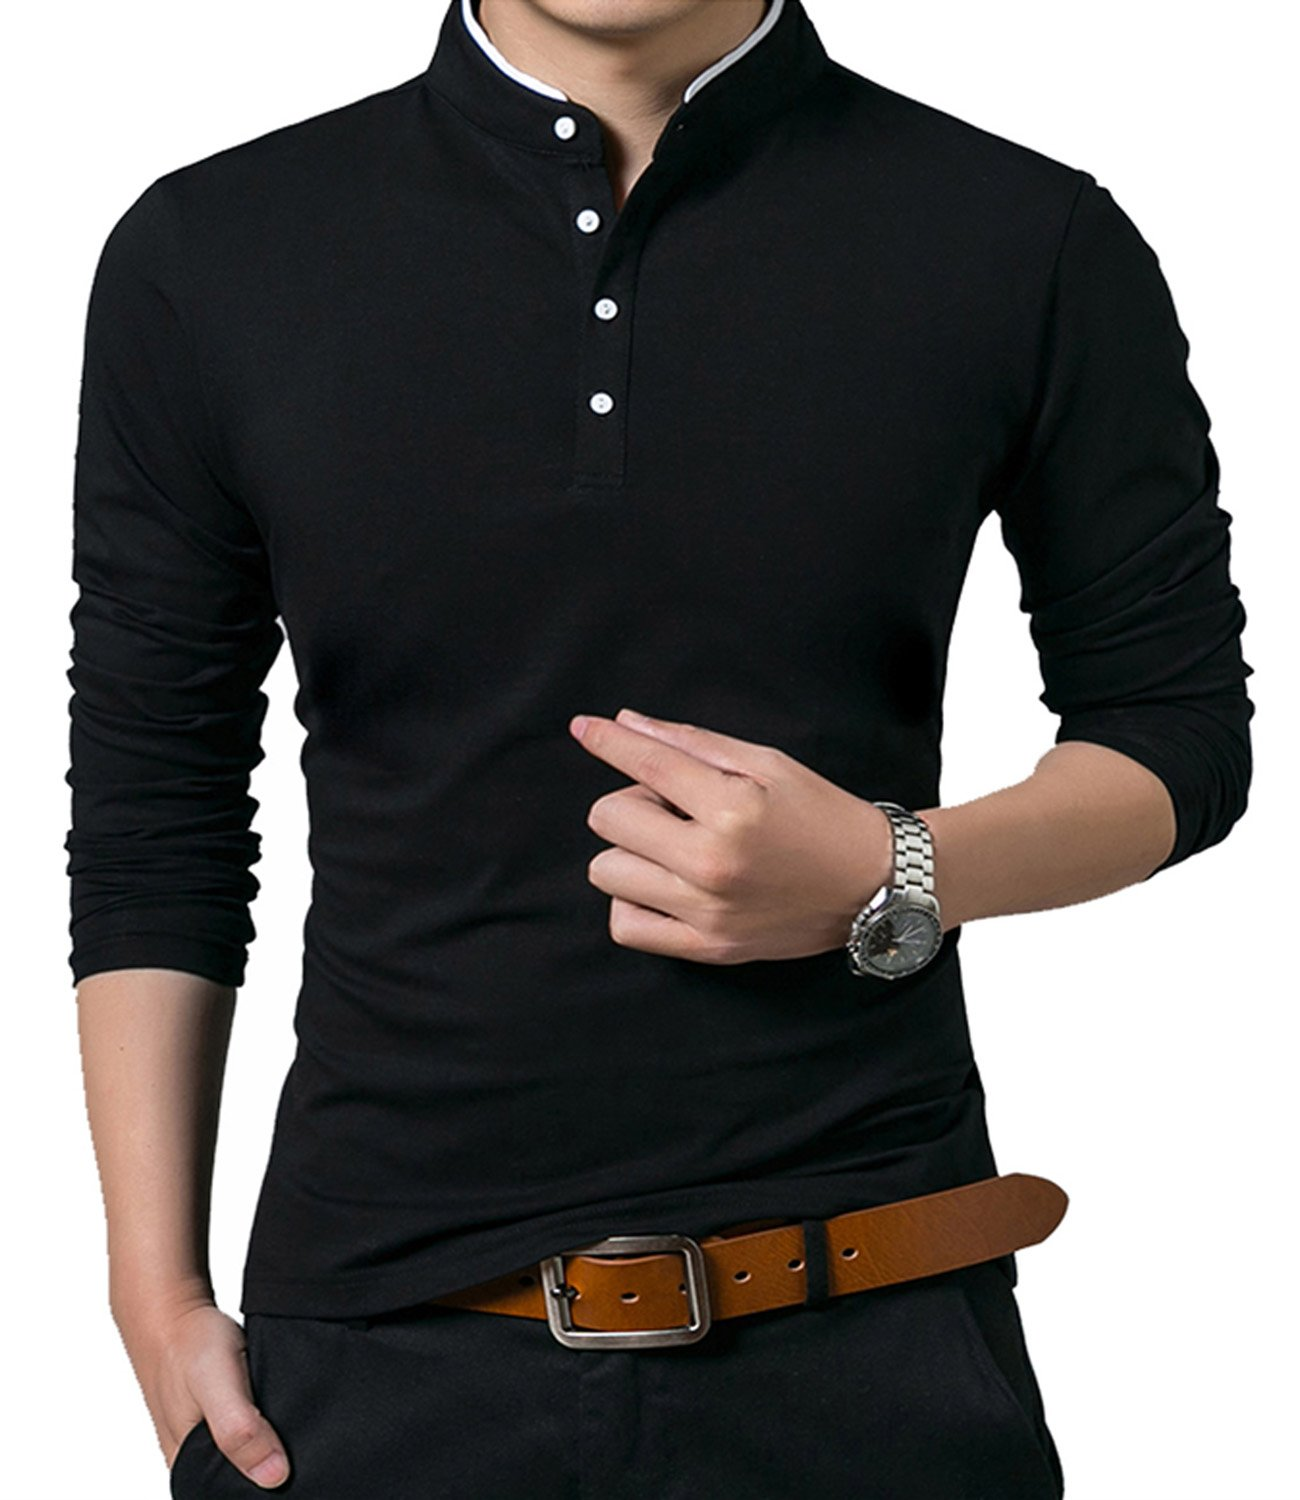 KUYIGO Men's Casual Slim Fit Long Sleeve Henley T Shirts Cotton Shirts (US X-Large, 01 Black)